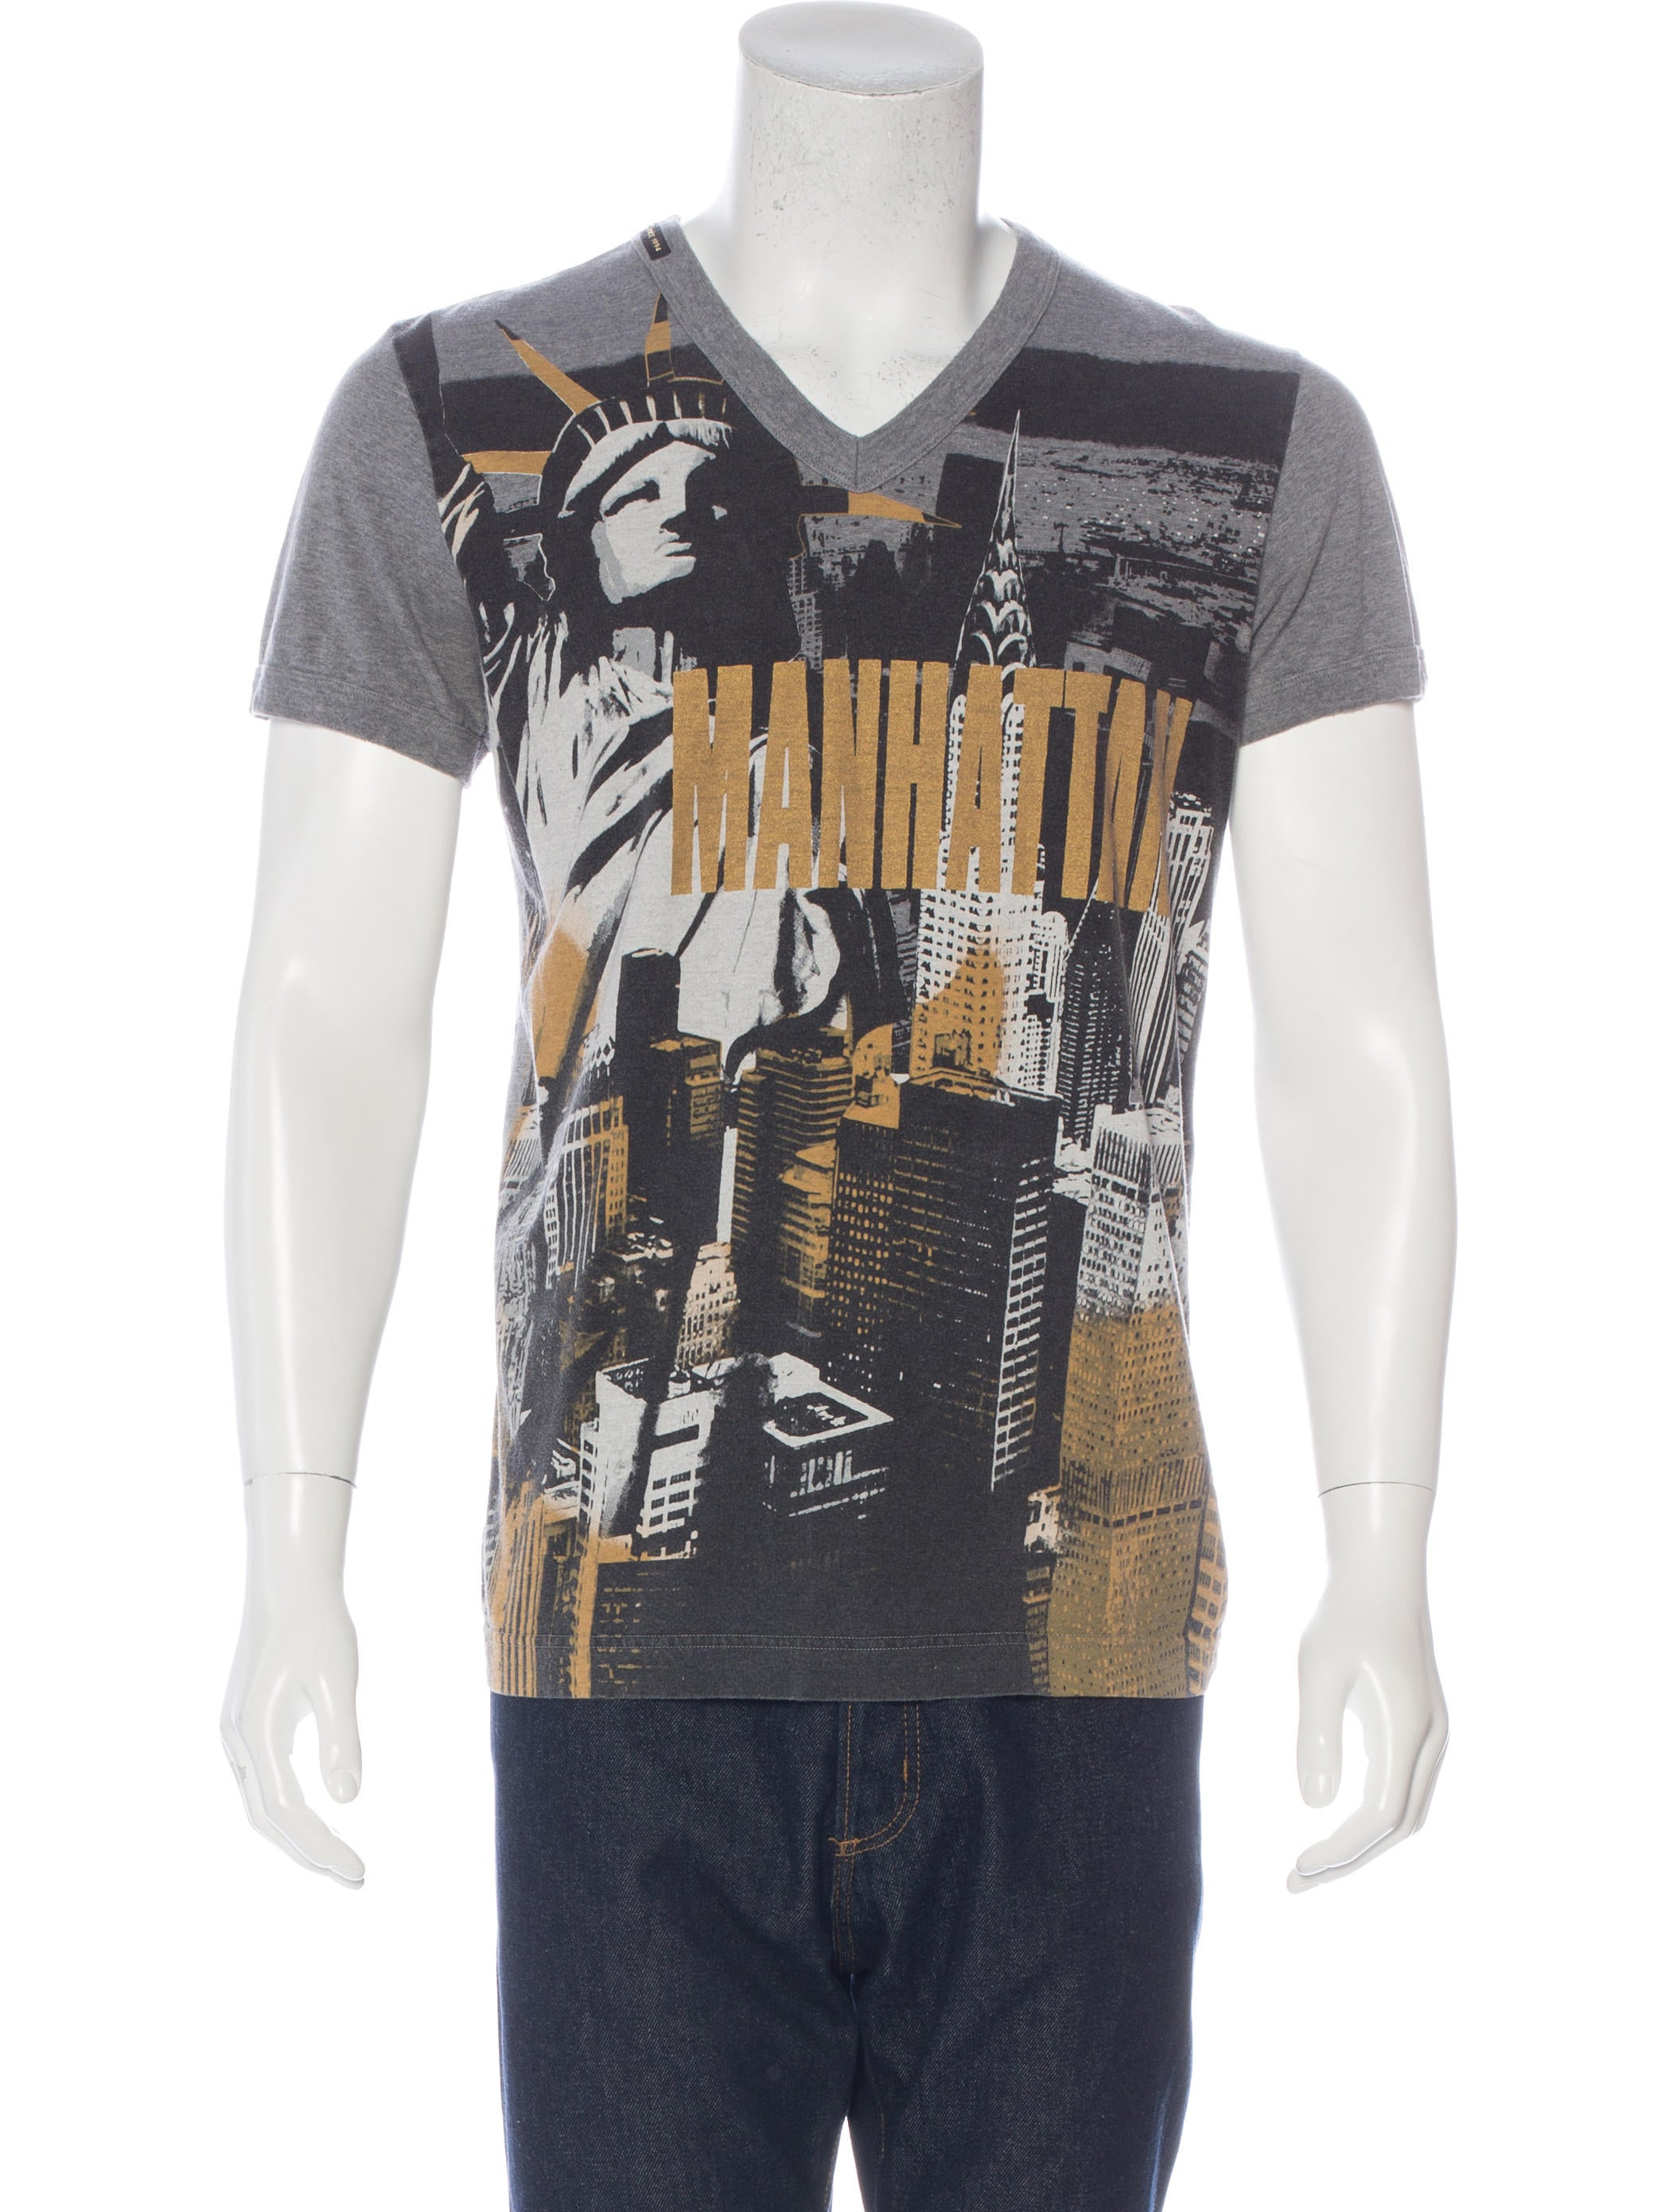 Dg Manhattan Graphic Print T Shirt Clothing Wdg35841 The Realreal